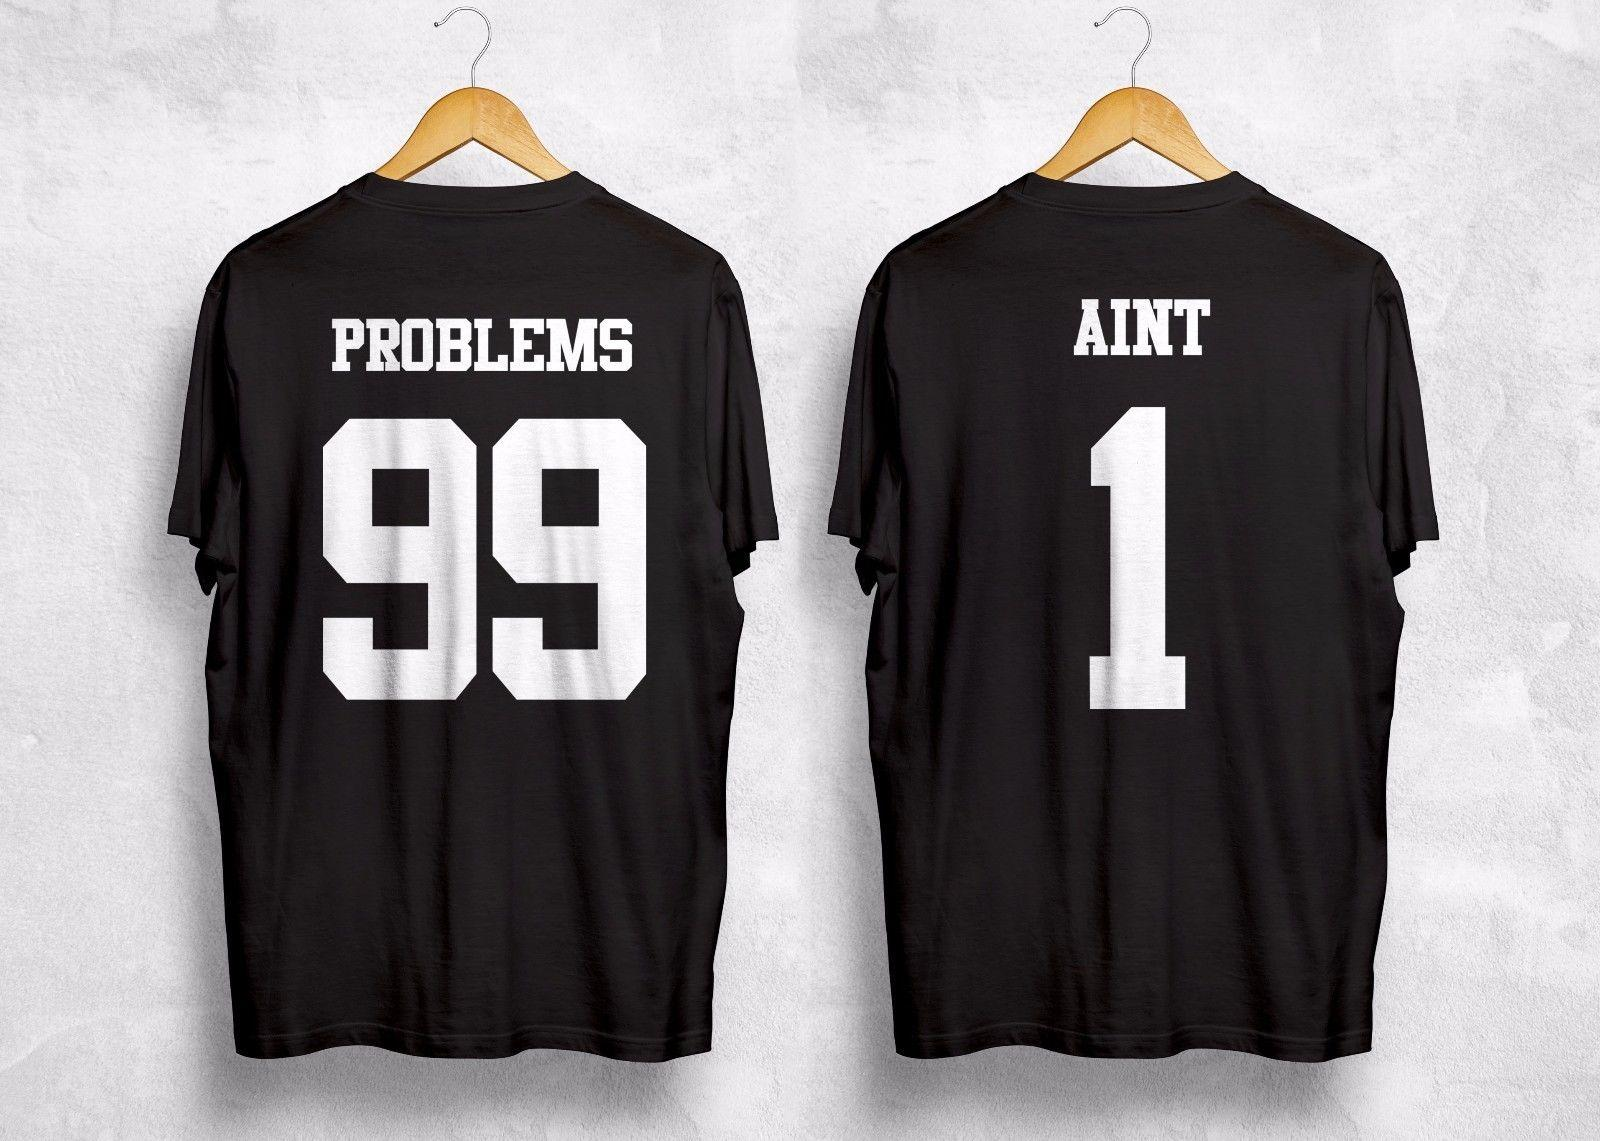 d8173909d1 I Got 99 Problems But Ain't One T Shirt Matching Couple Friends Best  BitchesFunny free shipping Casual tee